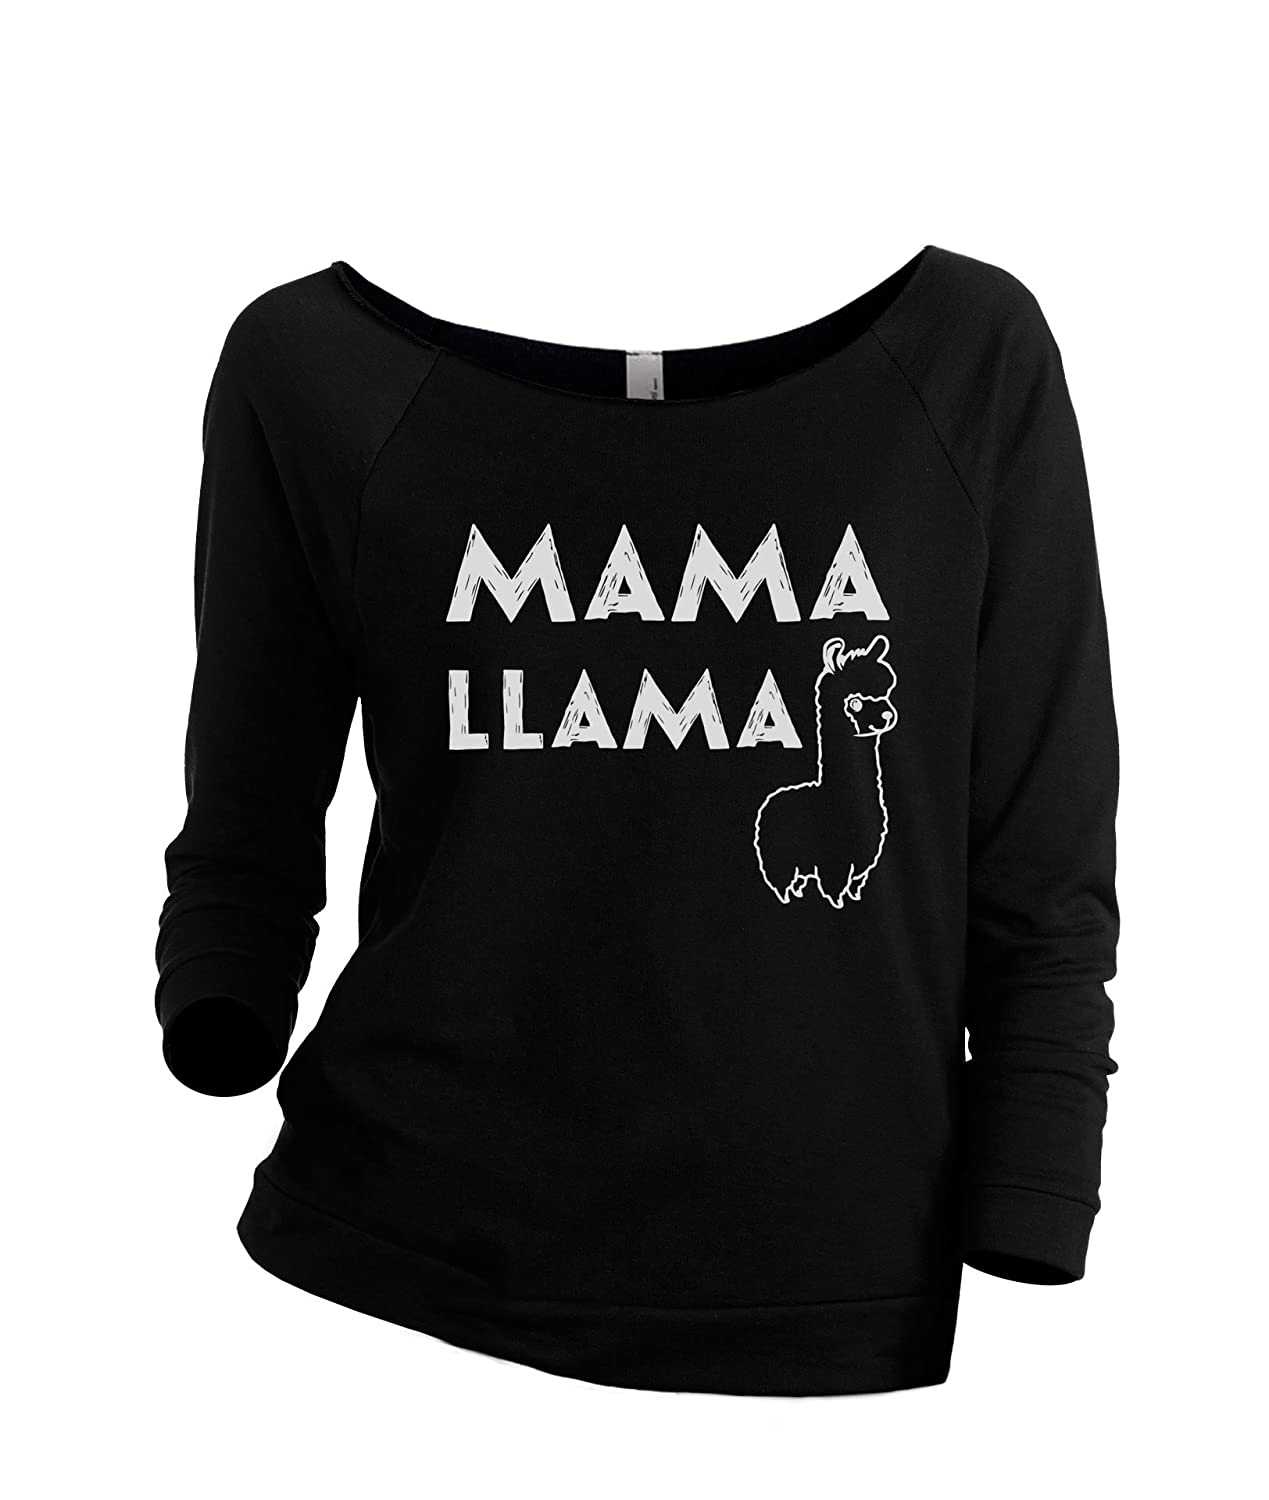 Thread Tank Mama Llama Women's Slouchy 3/4 Sleeves Raglan Sweatshirt Black